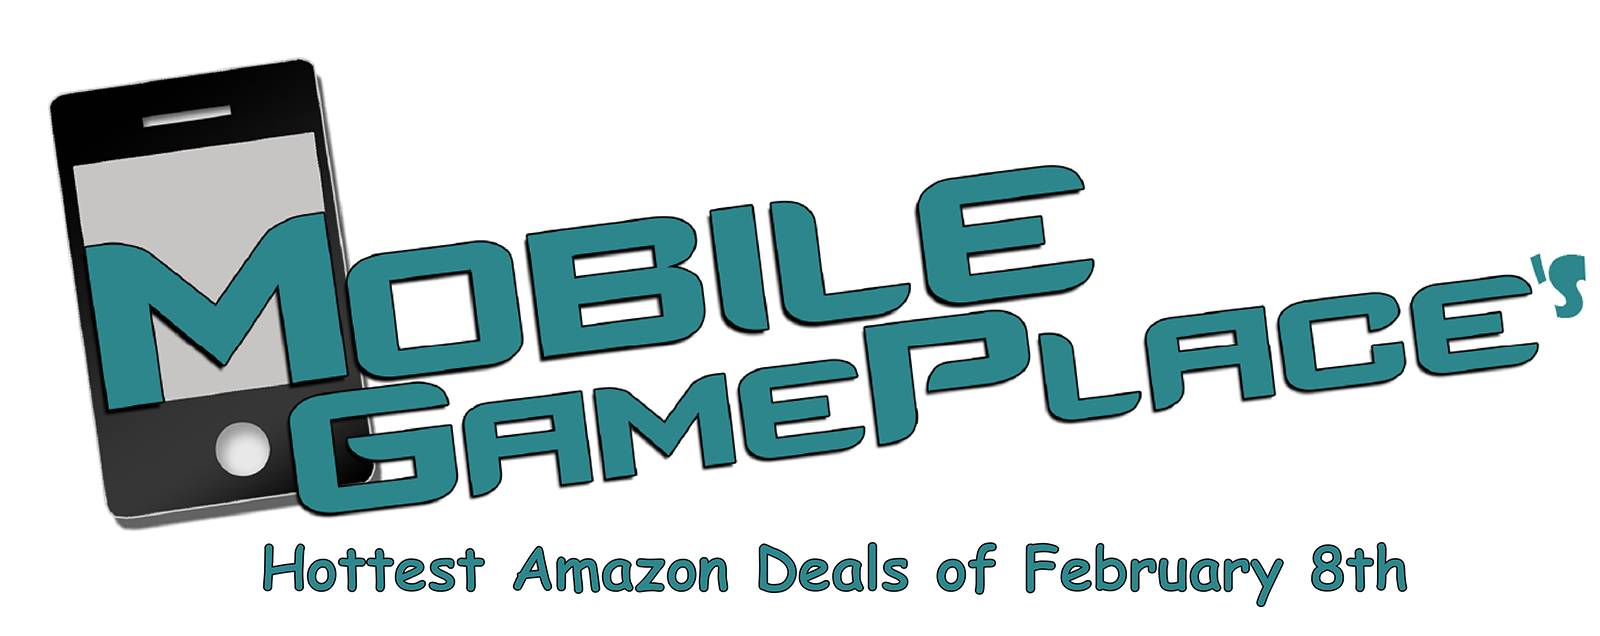 Amazon Deals February 8th